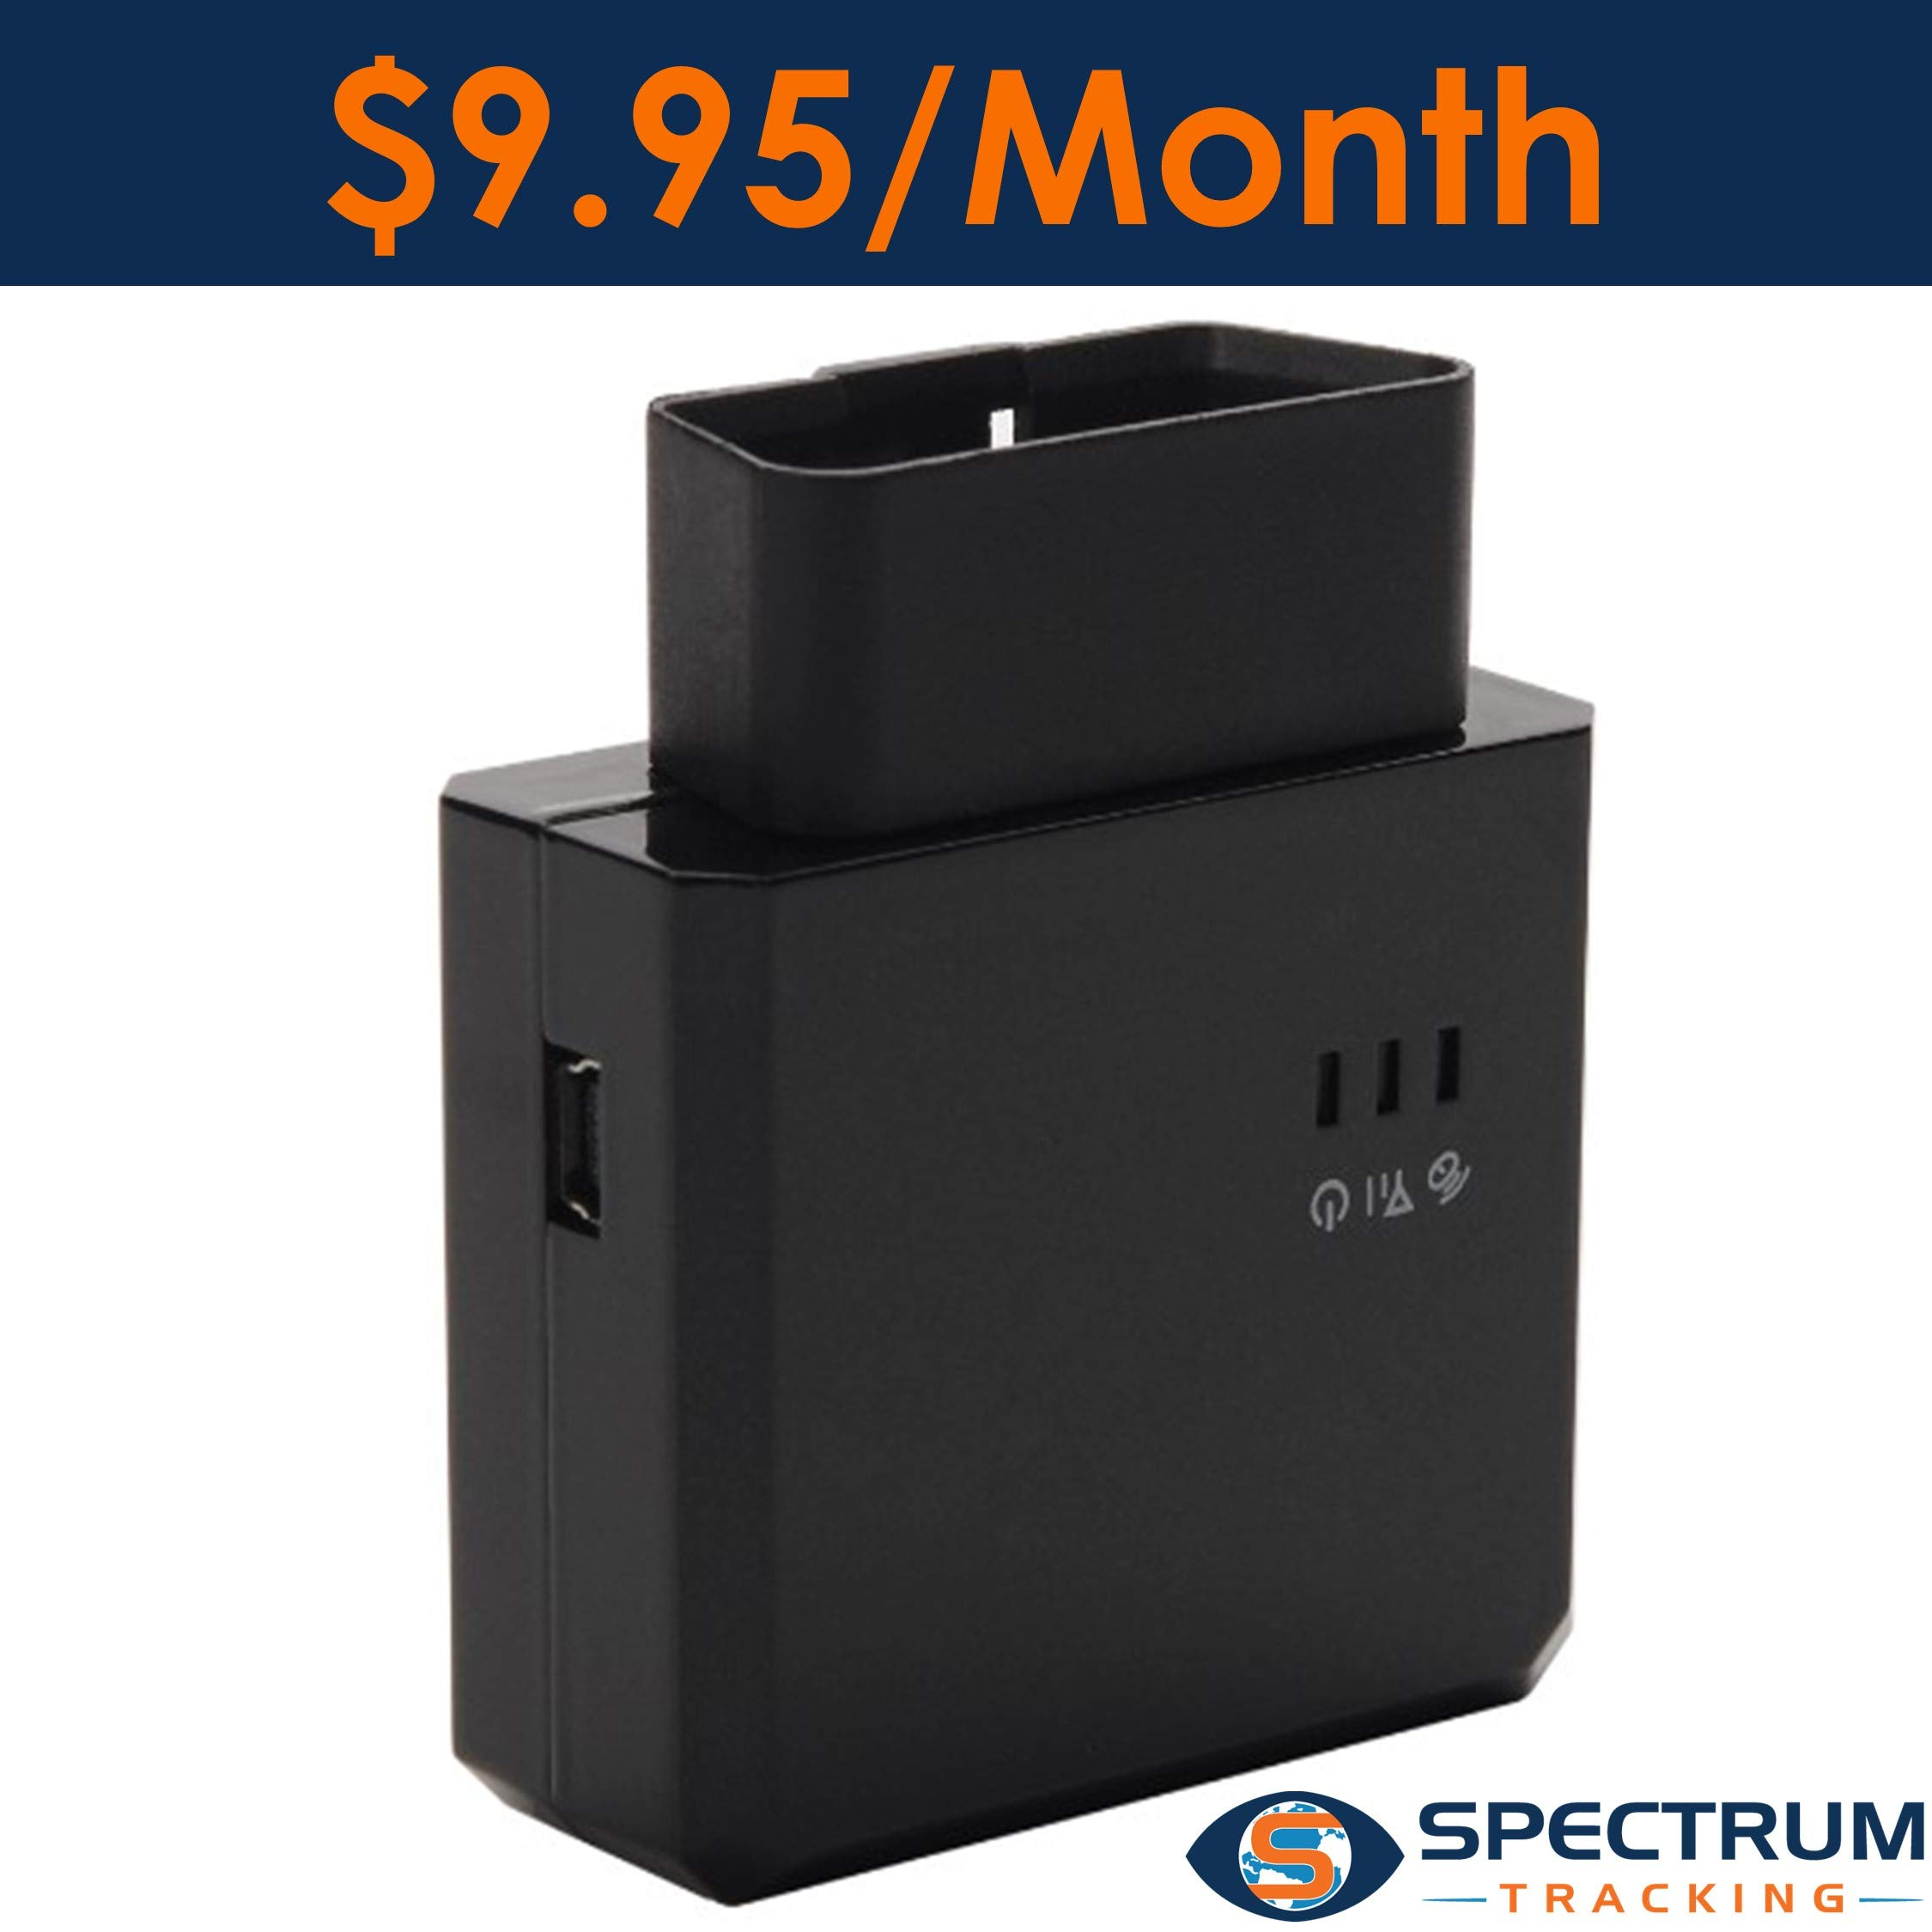 Spectrum Smart - OBD II GPS Tracker - $9.95/Month - Track Location/Speed/Driving Habits/Vehicle Health, Alerts, Geo-Fence - for Teen Drivers, Seniors, Small Business and Fleet Management.